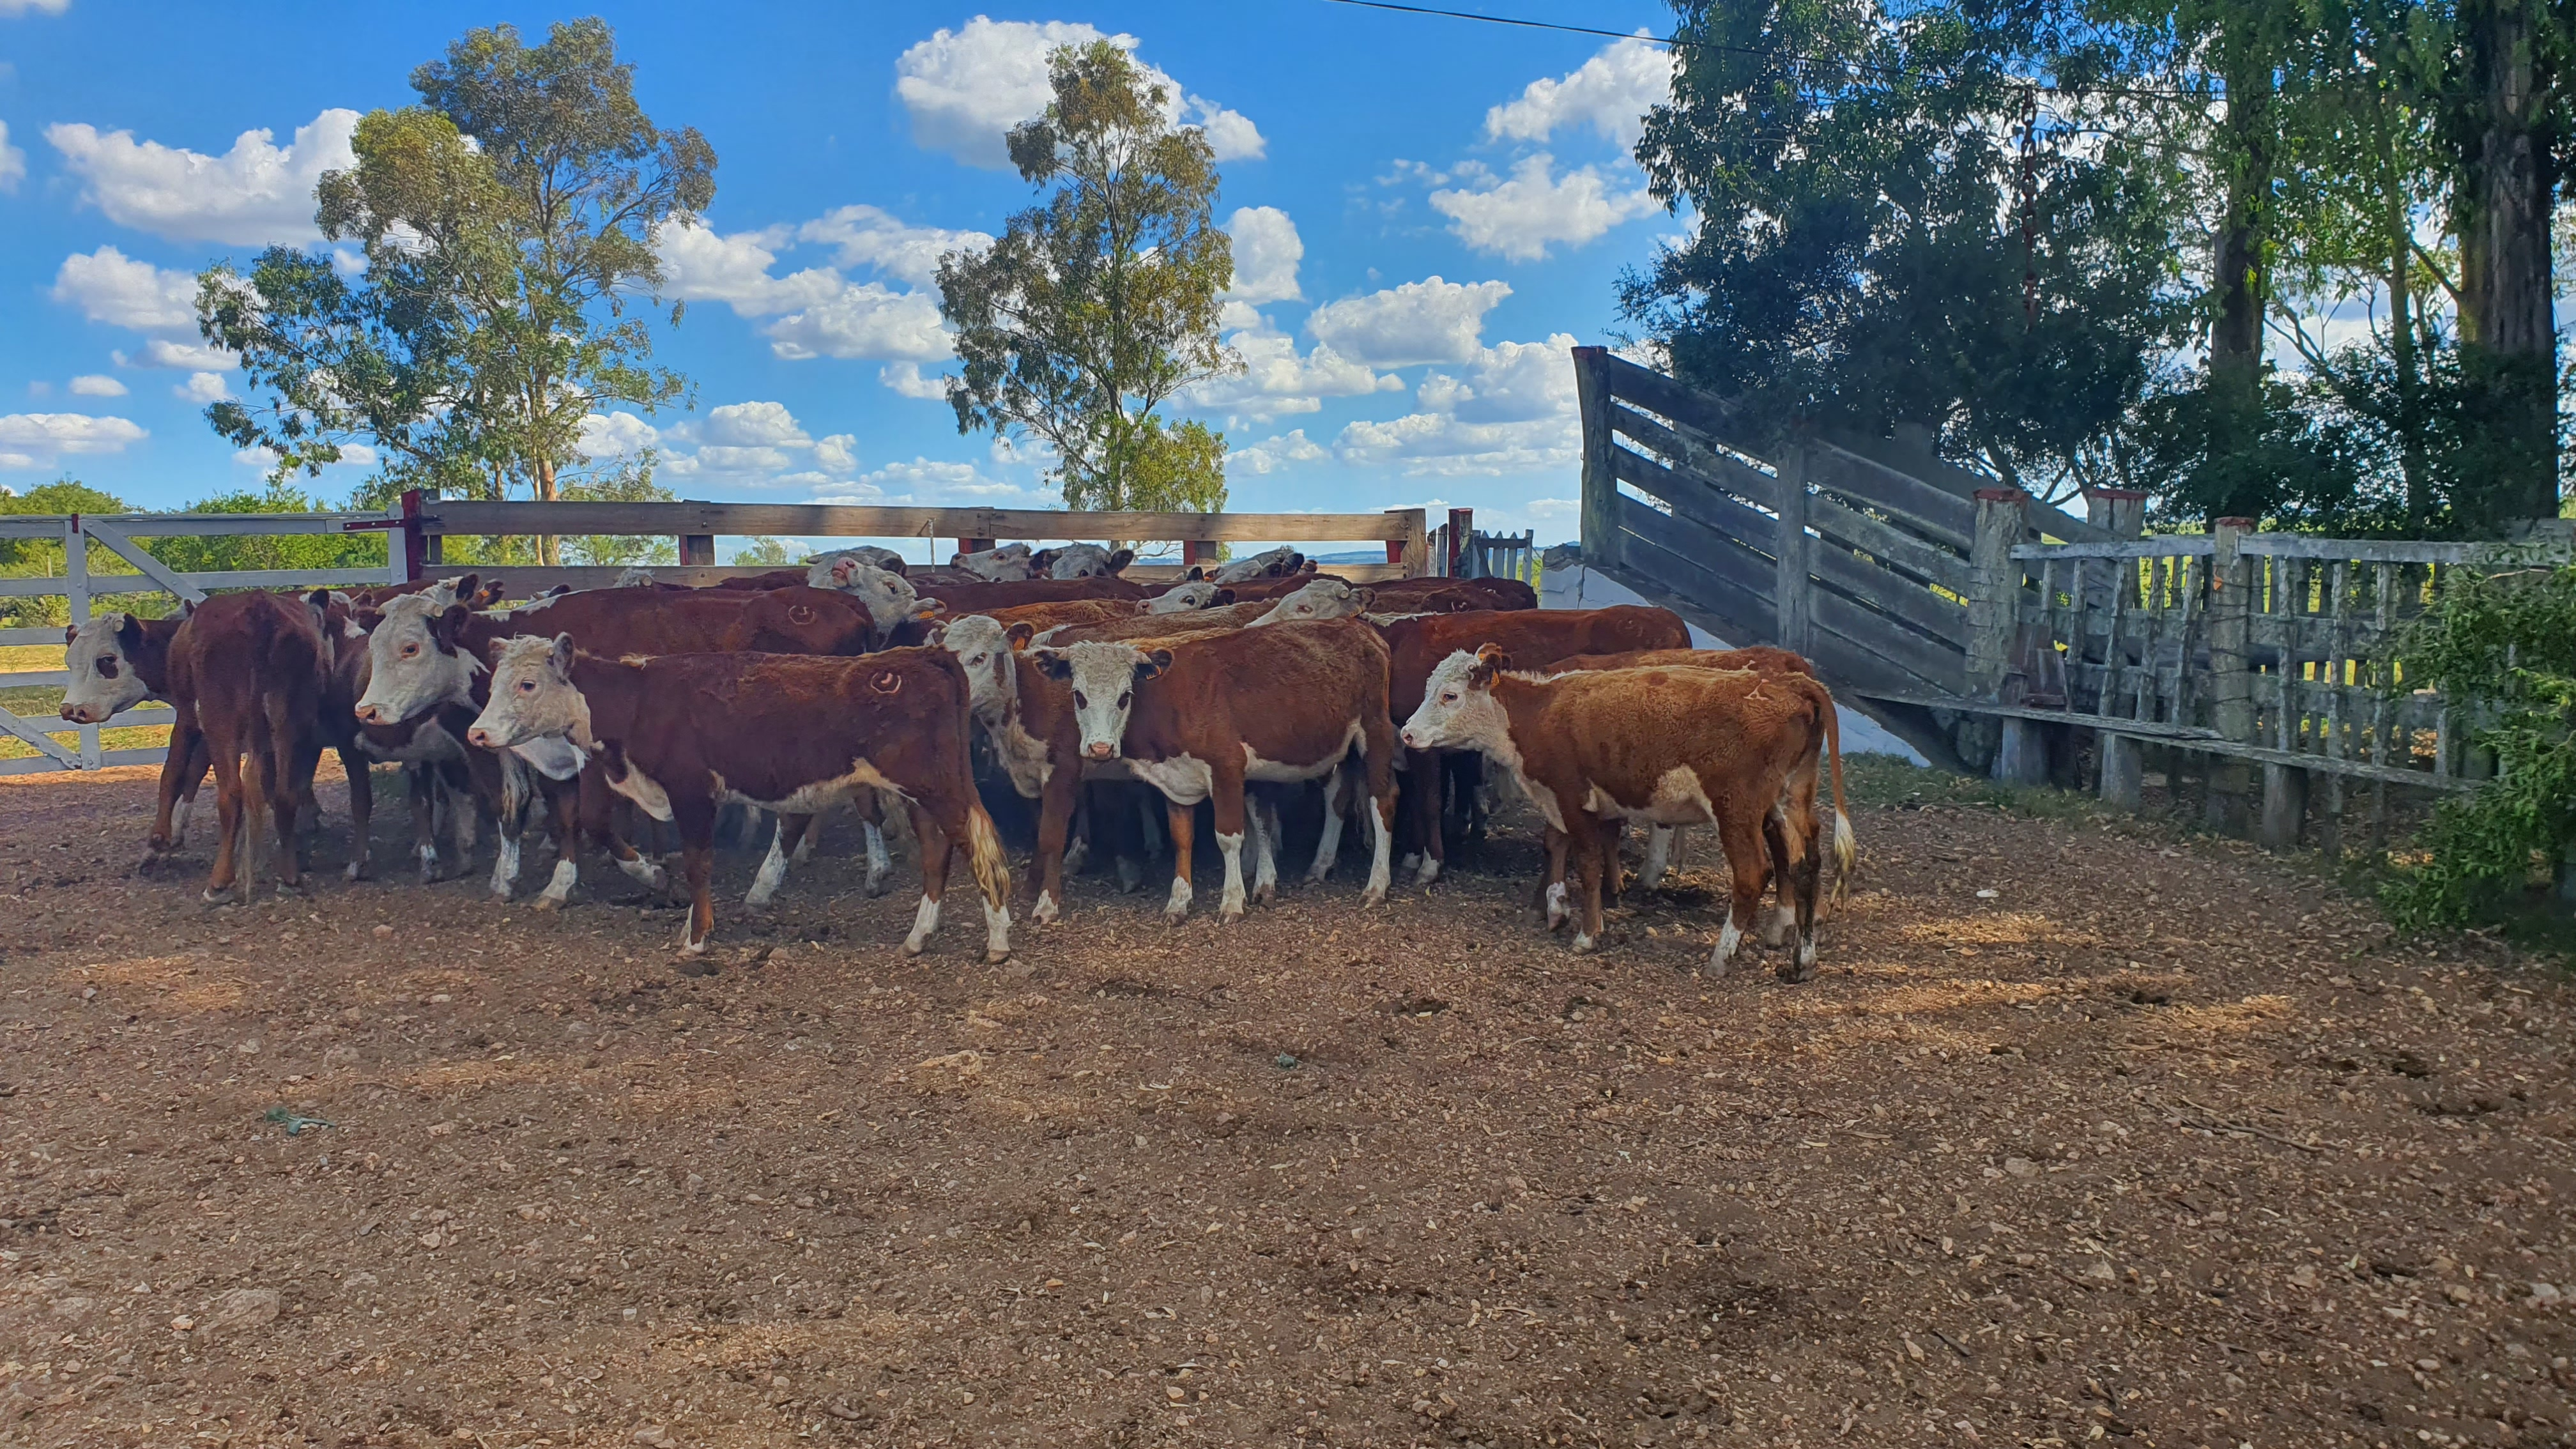 Lote 34 Vaquillonas 1 a 2 años Hereford 225kg - , Lavalleja